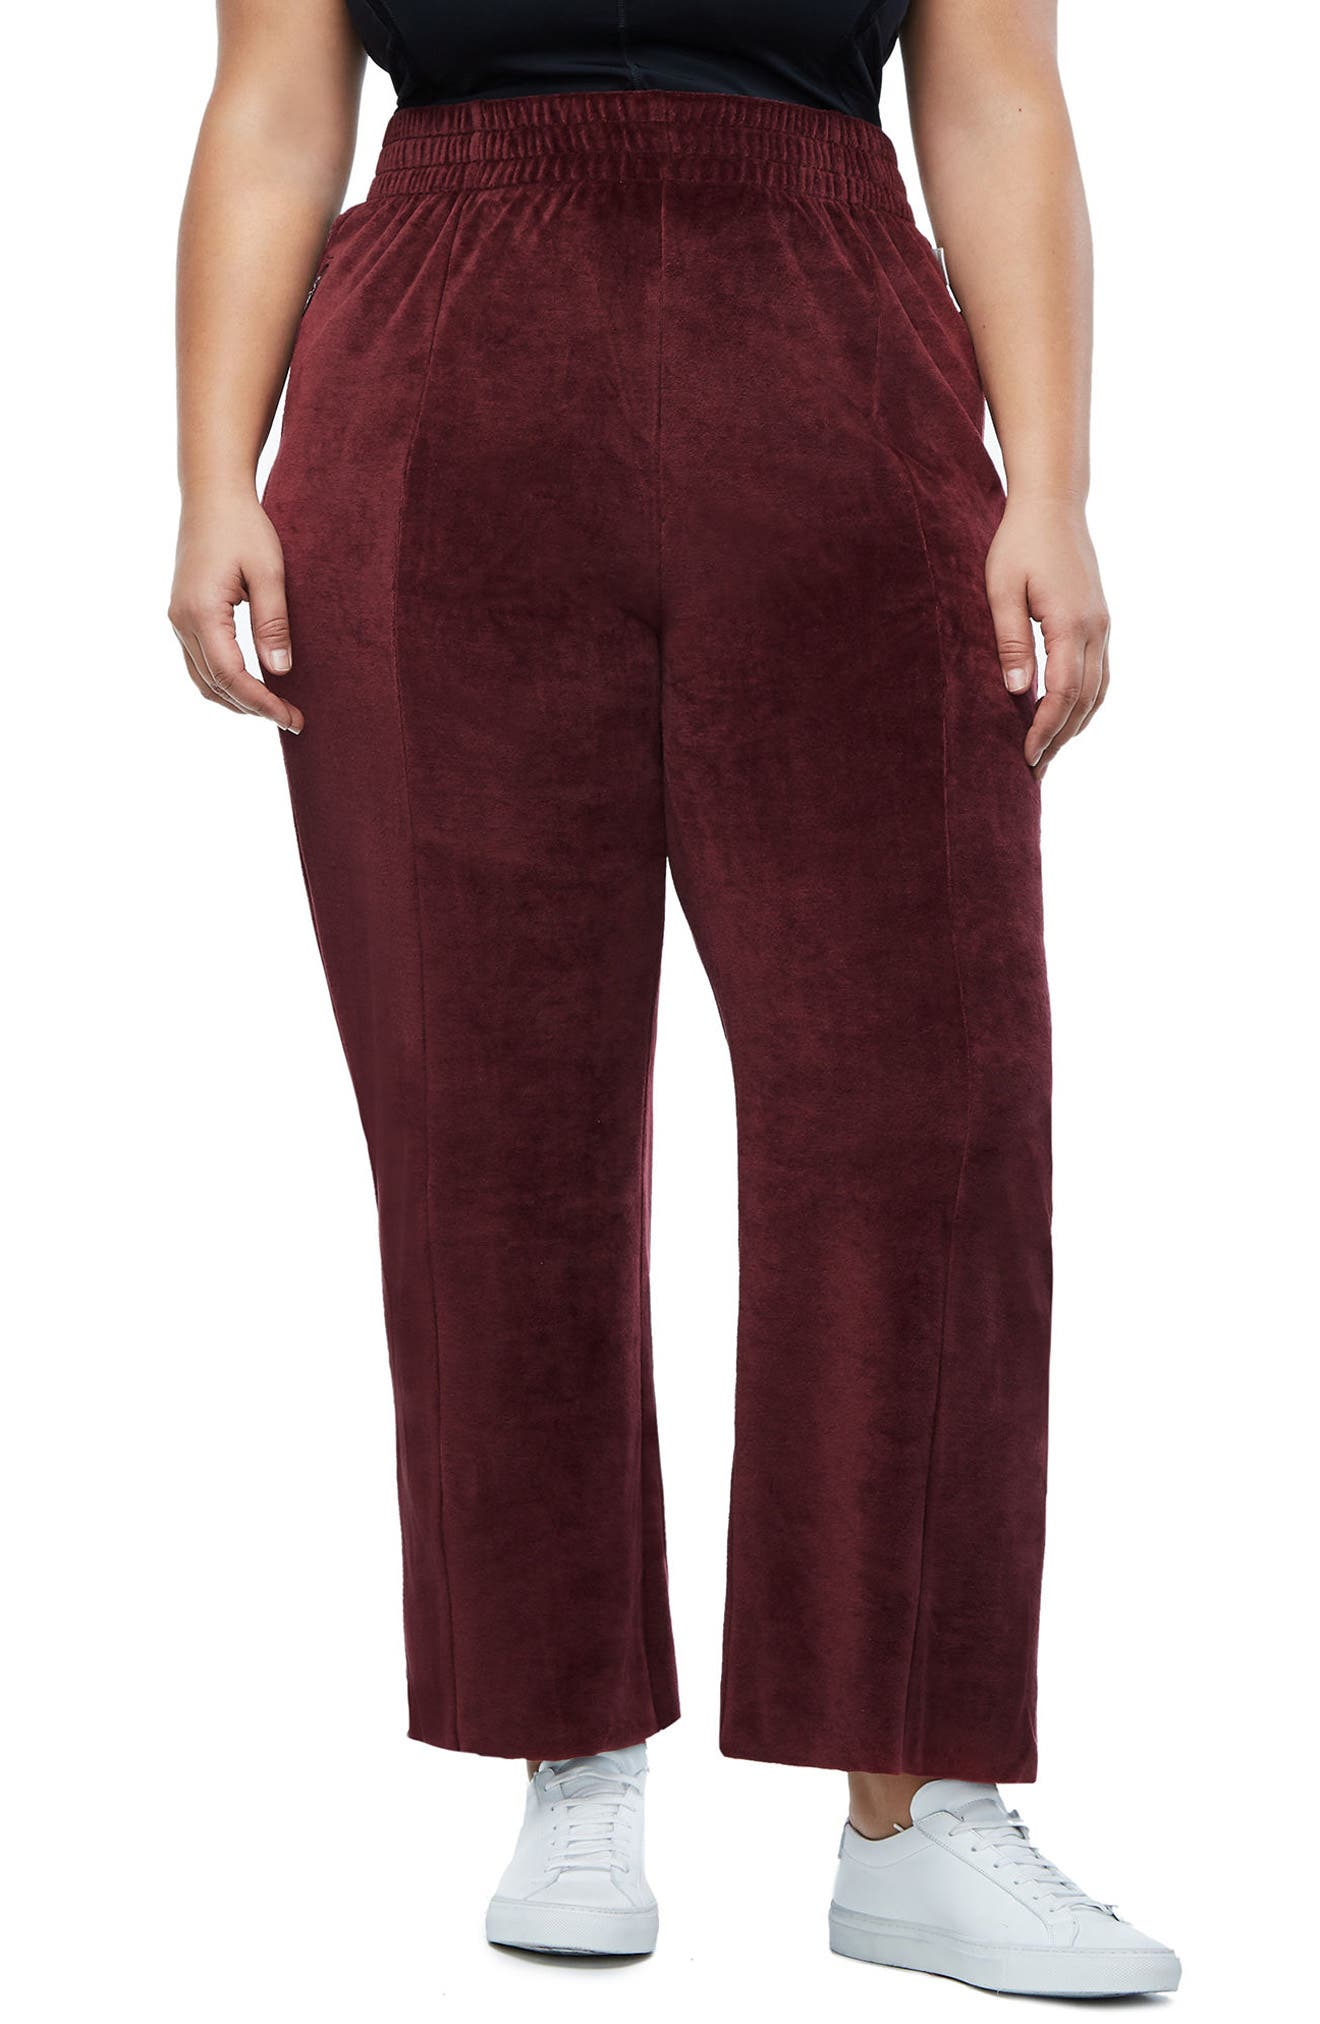 Alternate Image 3  - Good American Good Sweats The High Waist Sweatpants (Extended Sizes)